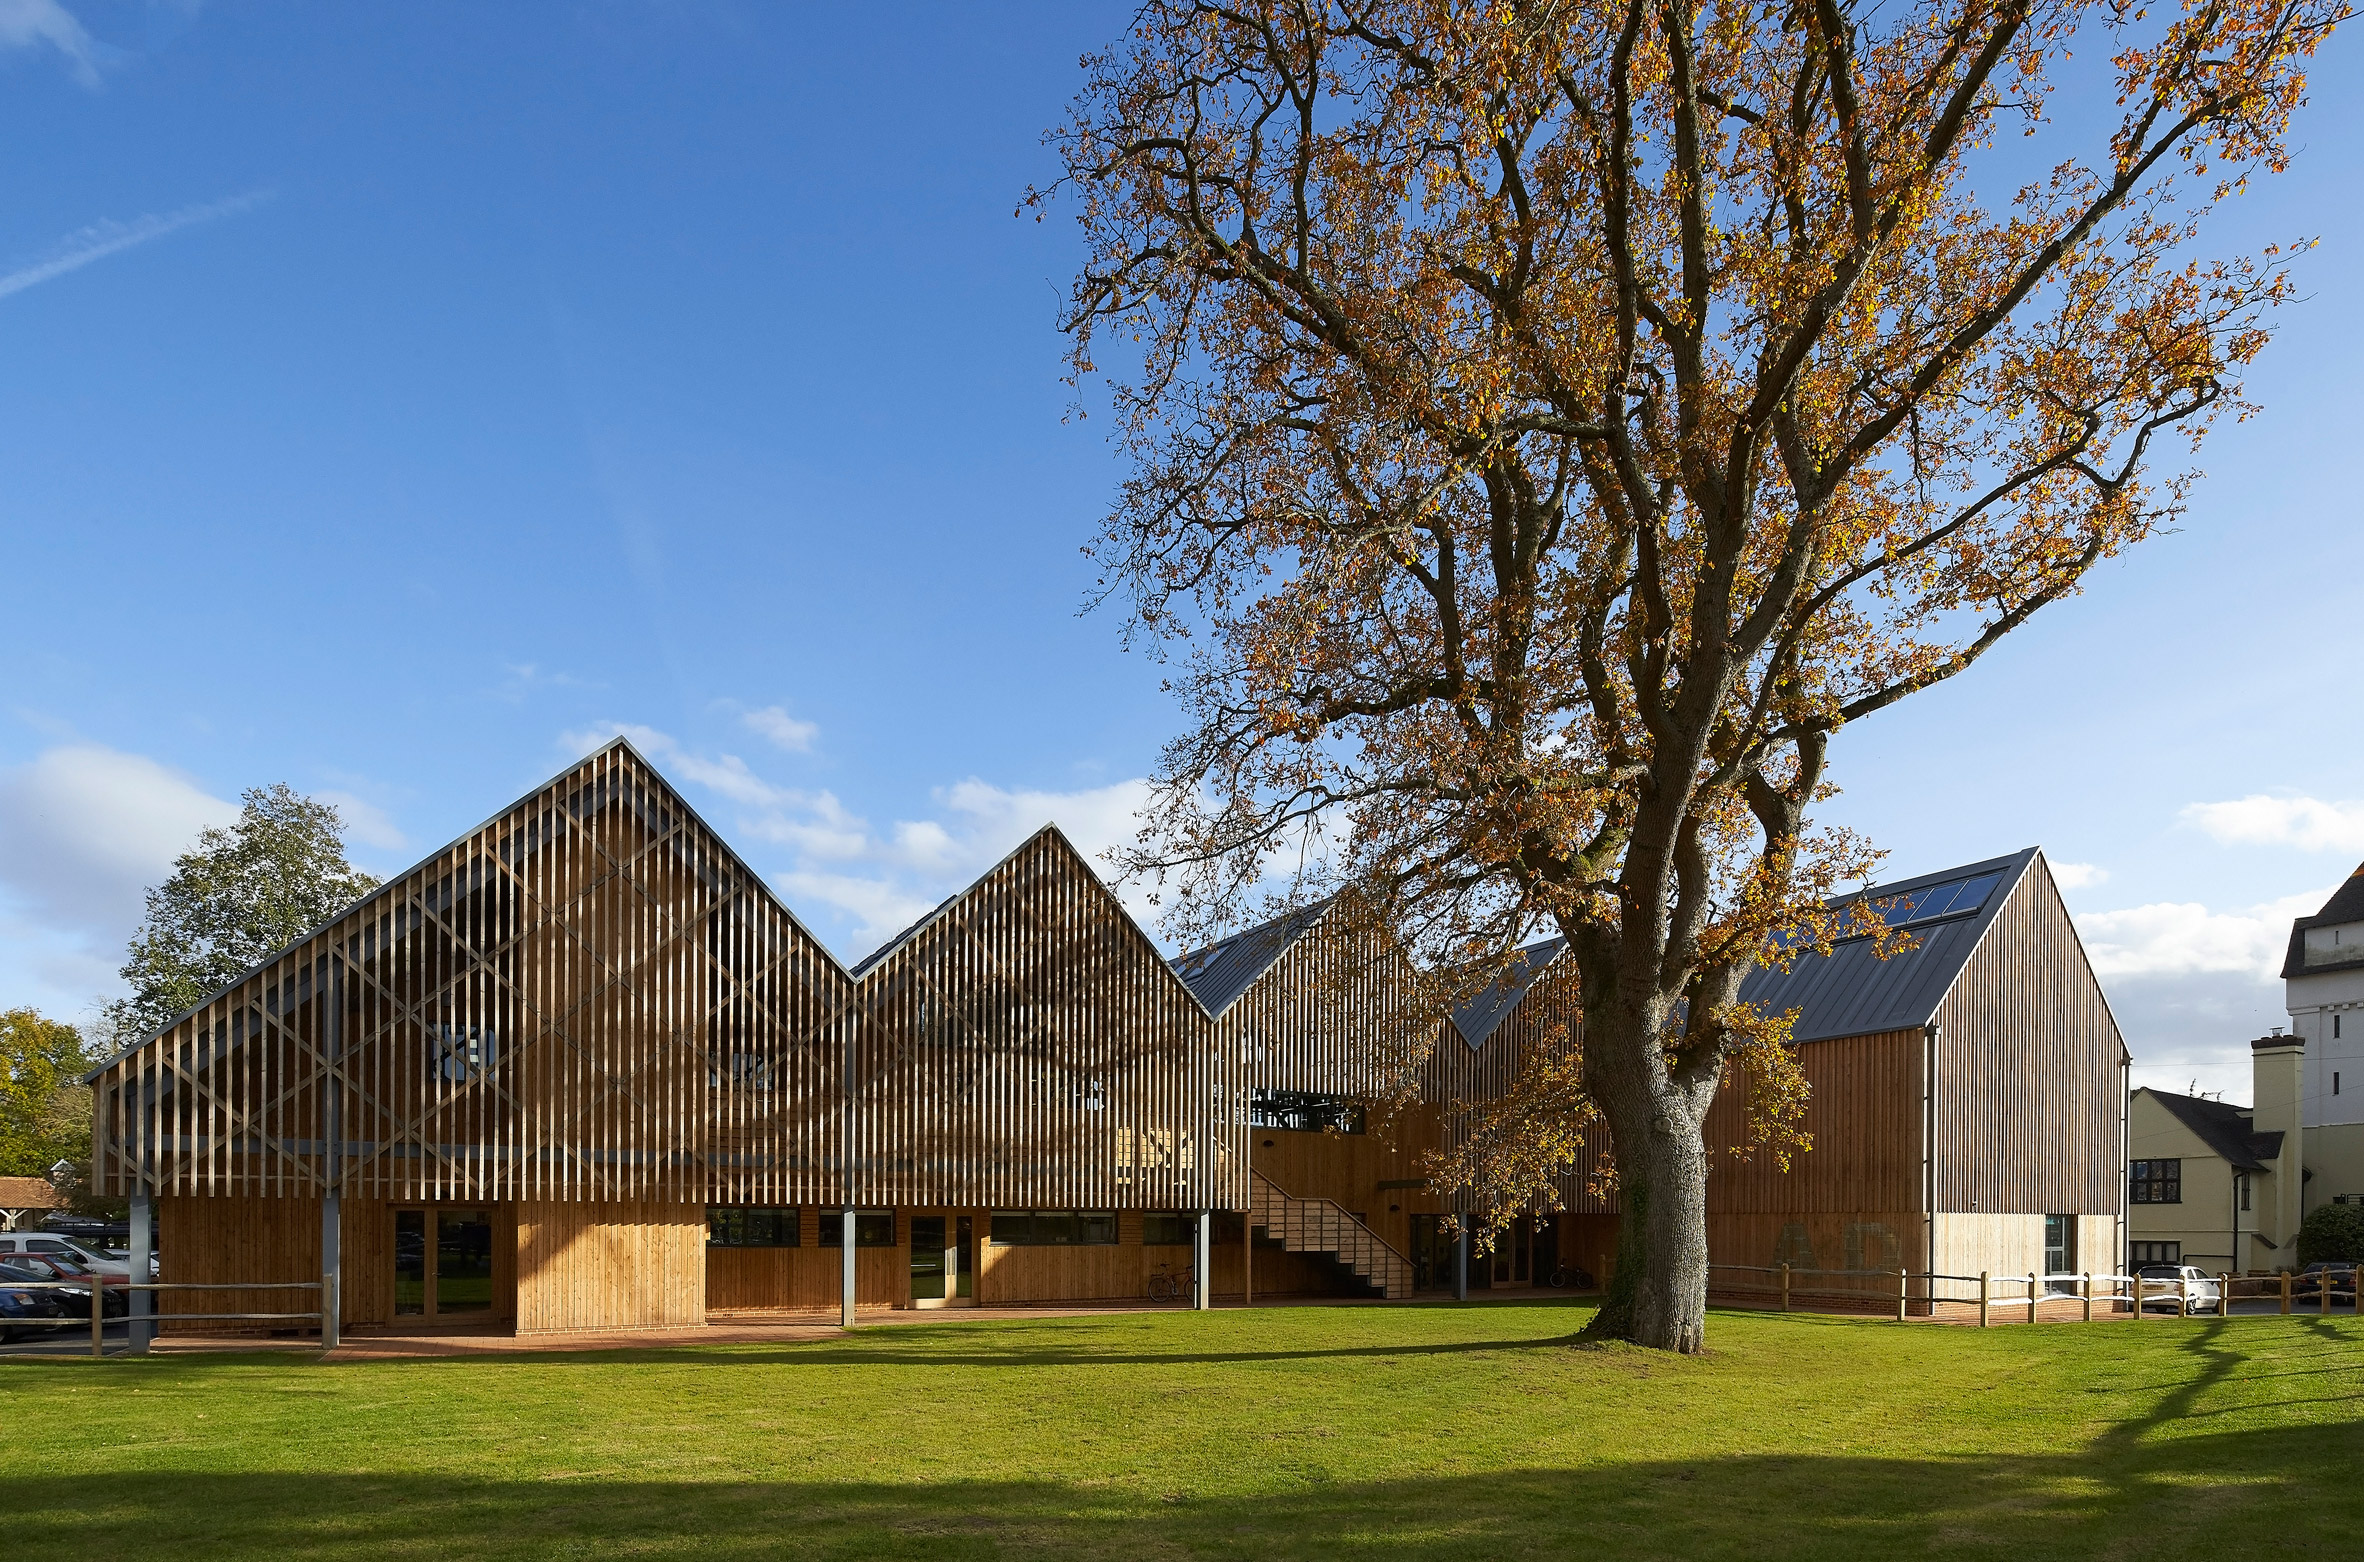 Feilden Clegg Bradley creates barn-inspired art building at Bedales School in Hampshire